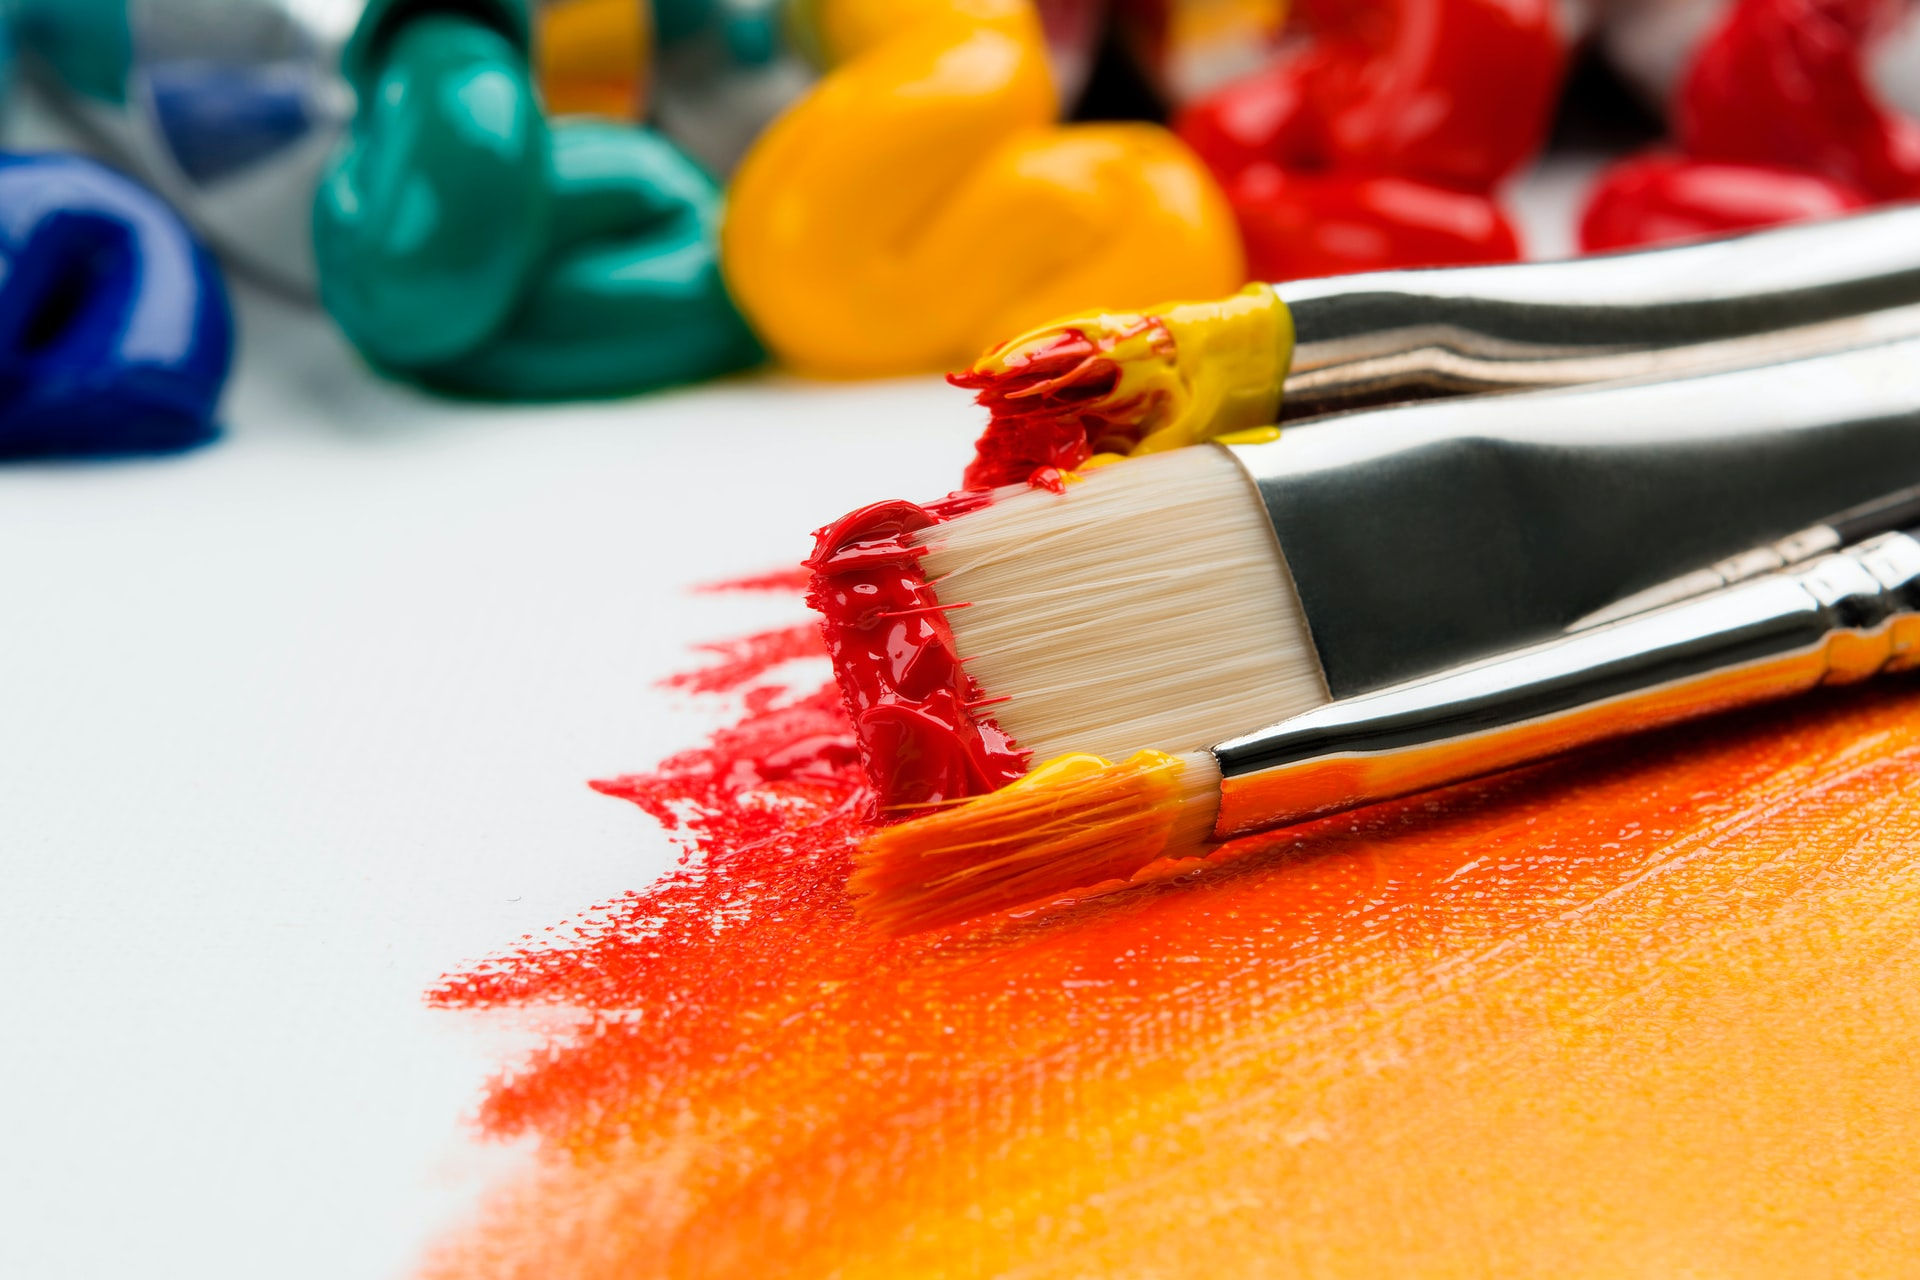 On a white canvas, red, orange and yellow paints have been mixed together. On top of the painted section are paintbrushes that are covered in red, orange and yellow paint. Behind them are different pots of coloured paint, like blue and green.